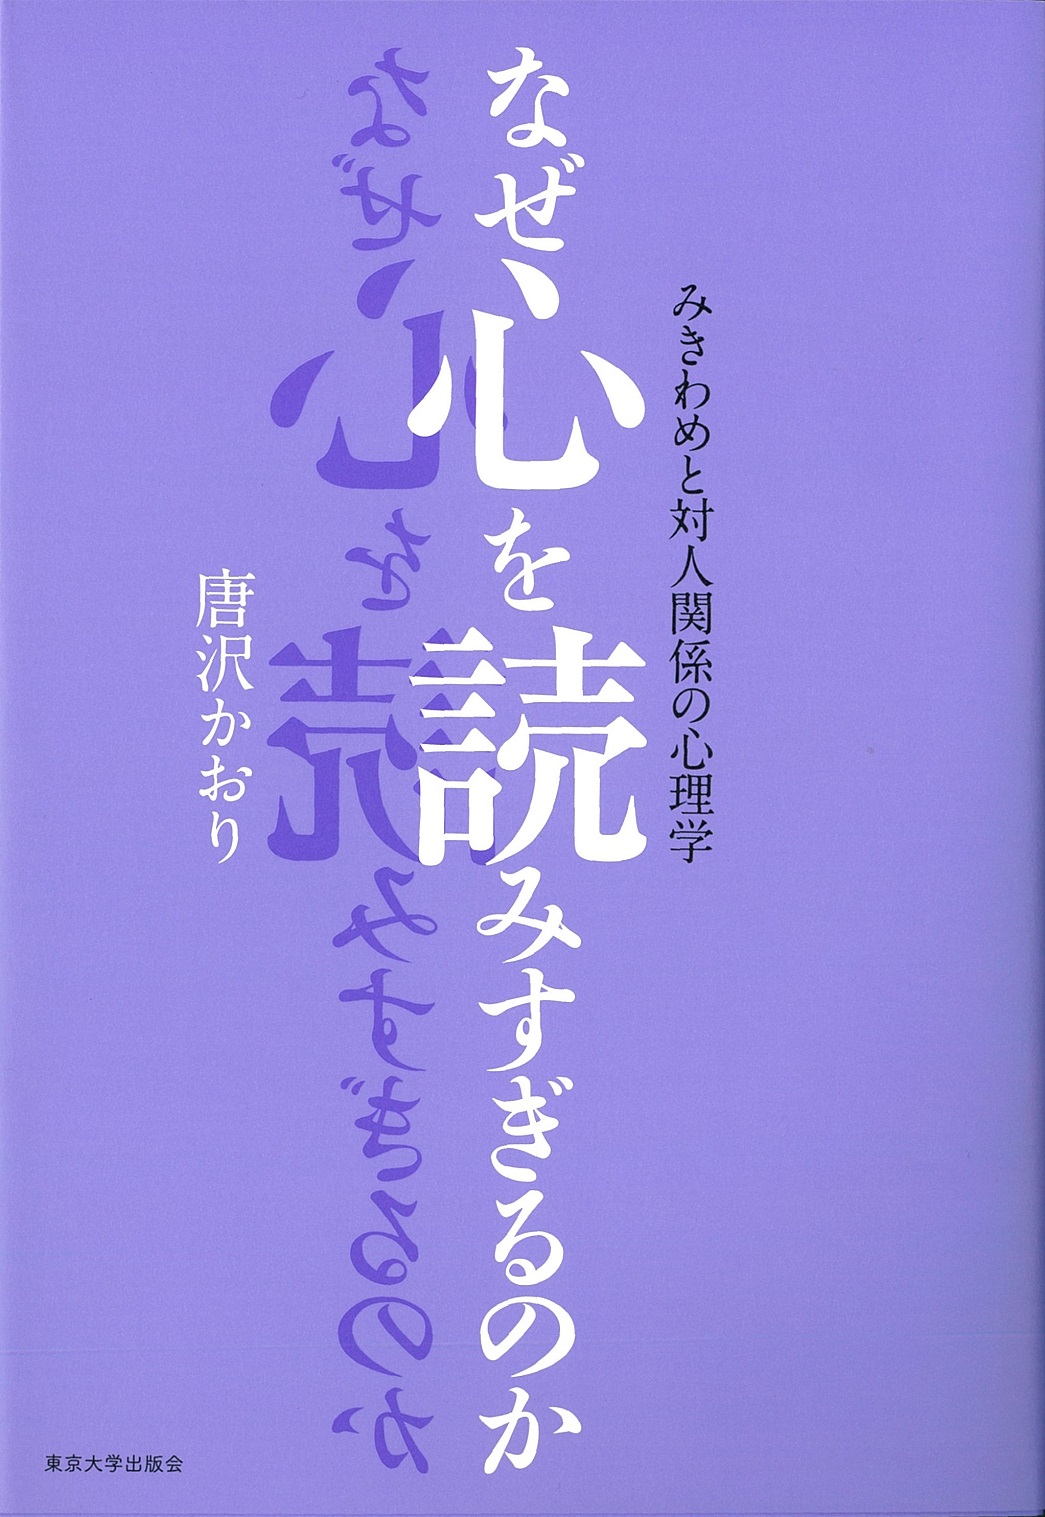 Title and author's name printed in white on a purple cover